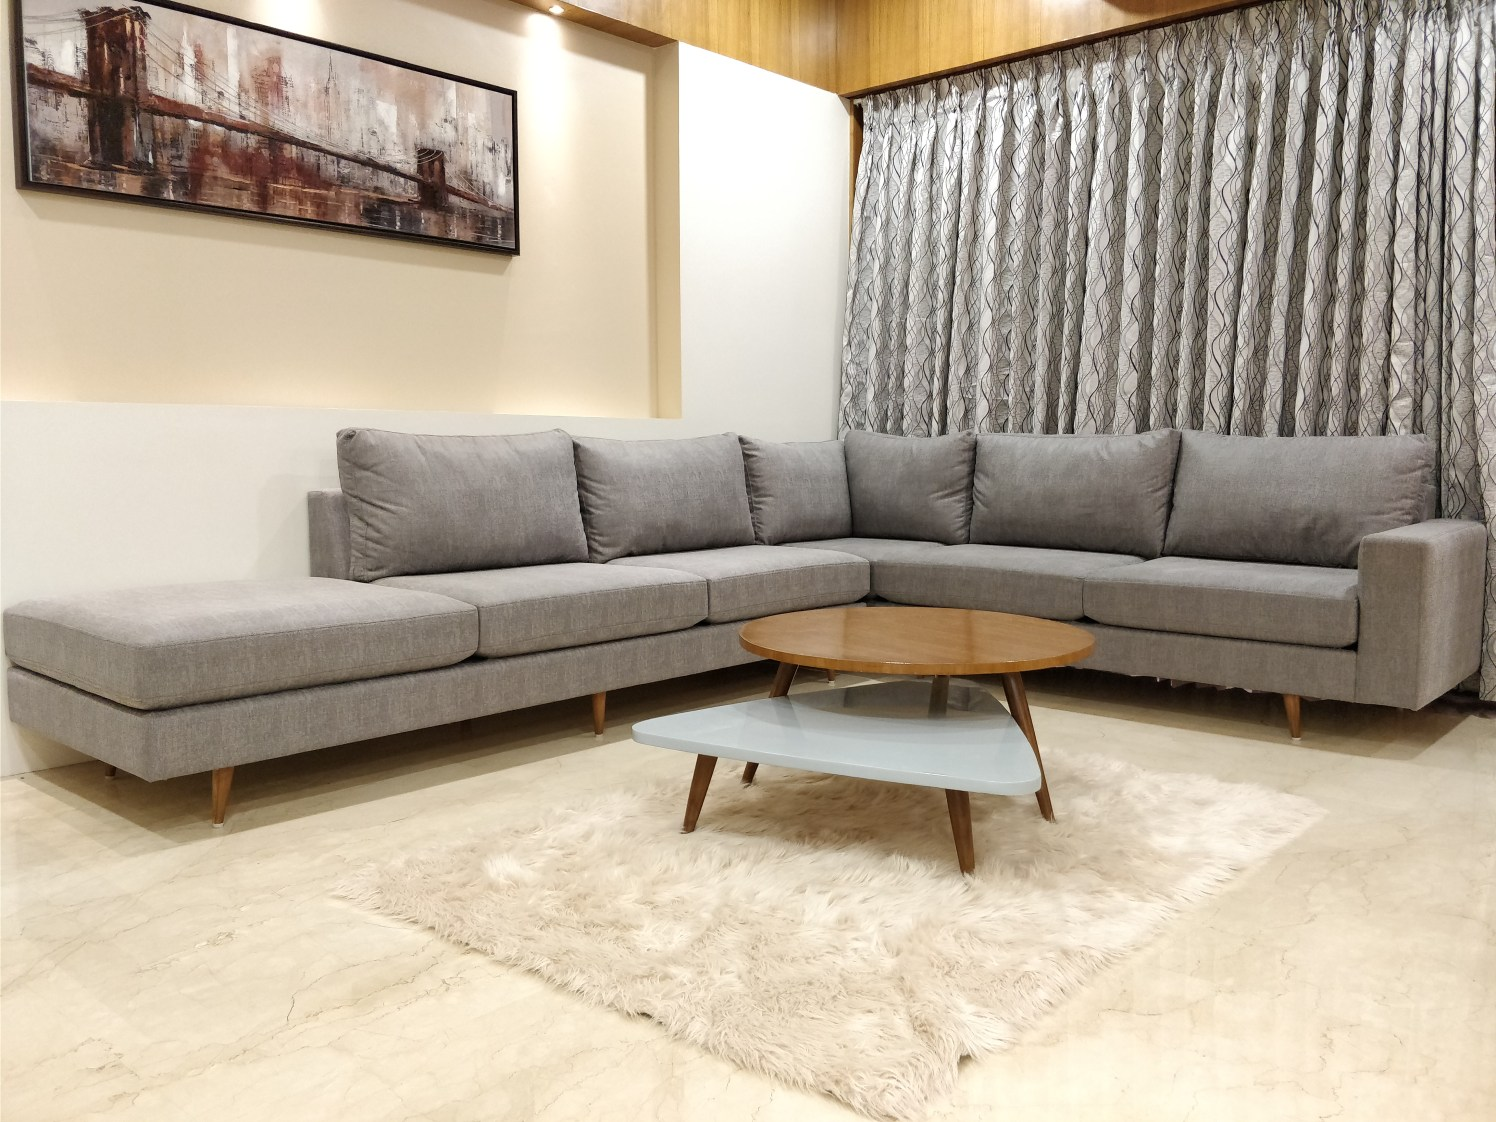 Grey Sectional Sofa With Wooden Centre Table And Soft Rug by Ankil Desai Living-room Modern | Interior Design Photos & Ideas